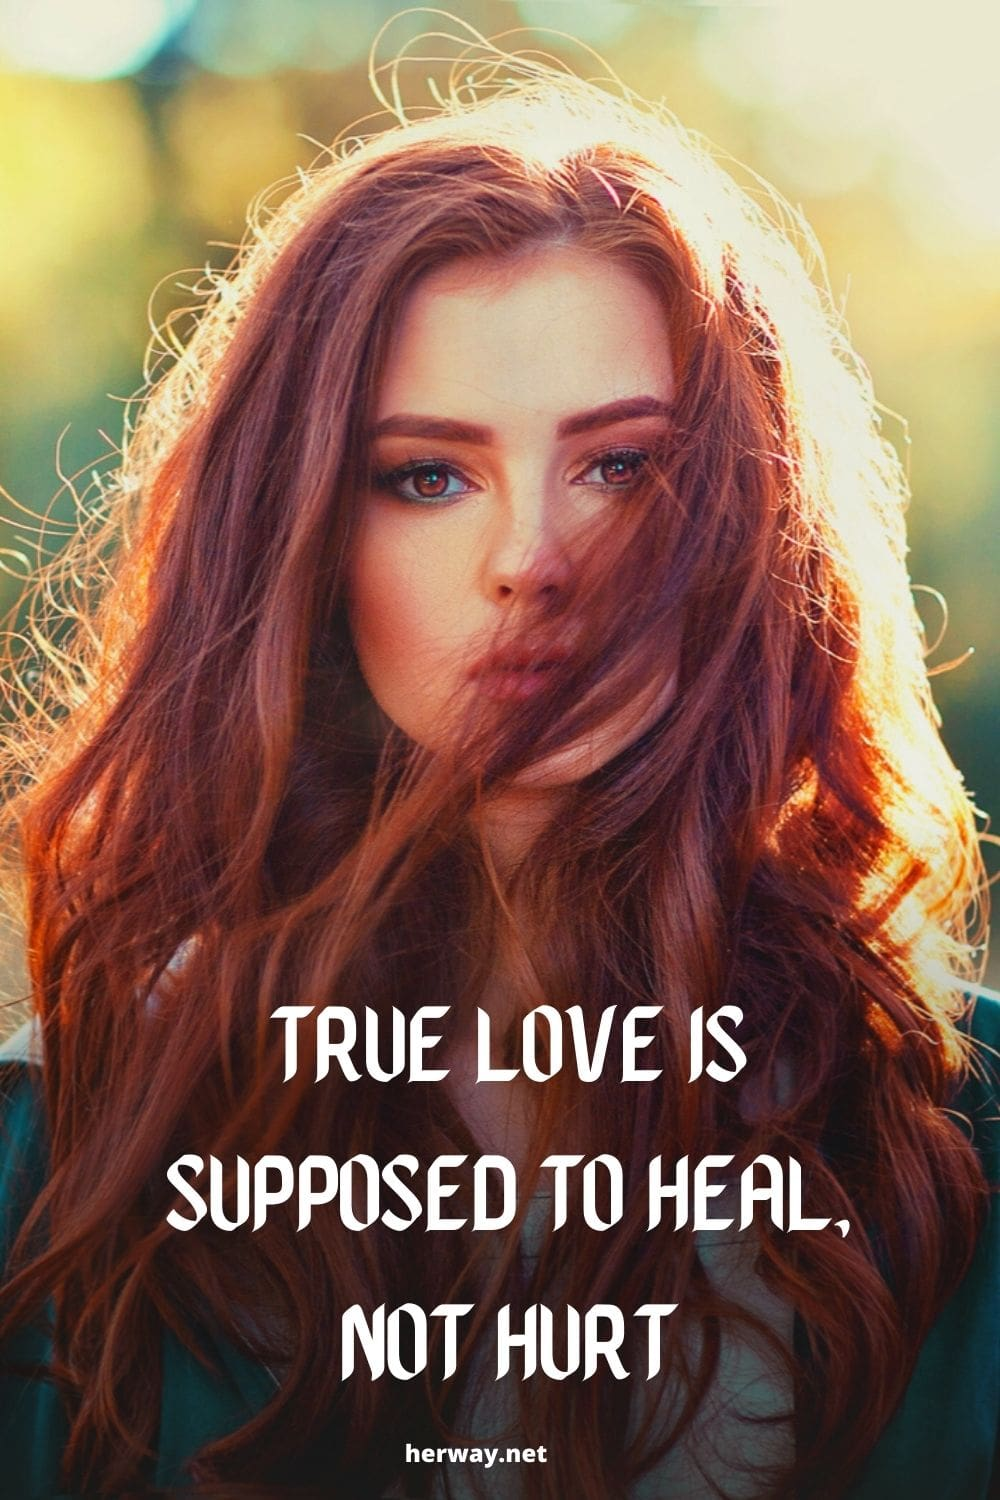 True Love Is Supposed To Heal, Not Hurt